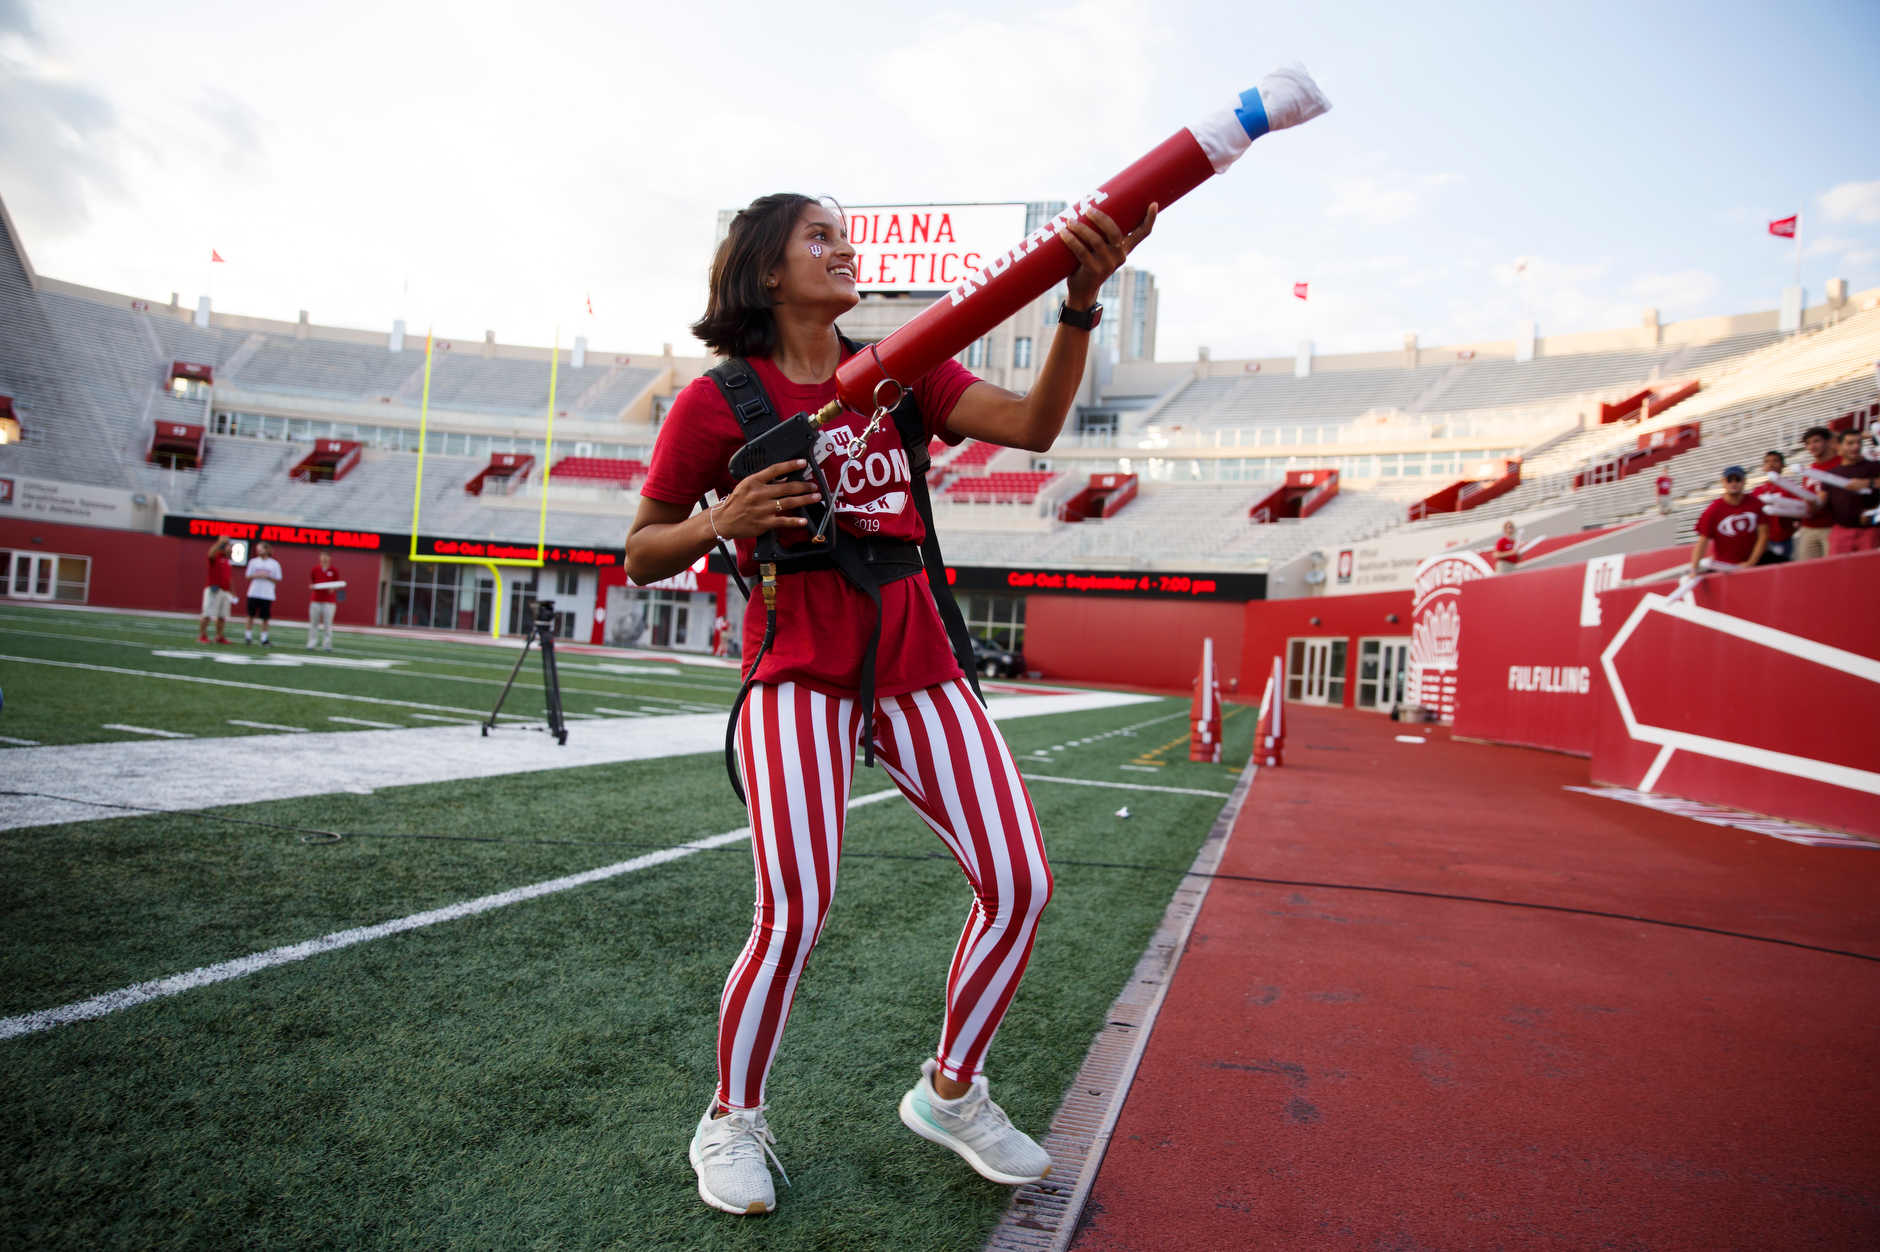 Indiana University Orientation Team member Jaanvi Bisariya shoots a t-shirt into the crowd during the Traditions and Spirit of IU at Memorial Stadium on Friday, Aug. 23, 2019. (James Brosher/Indiana University)